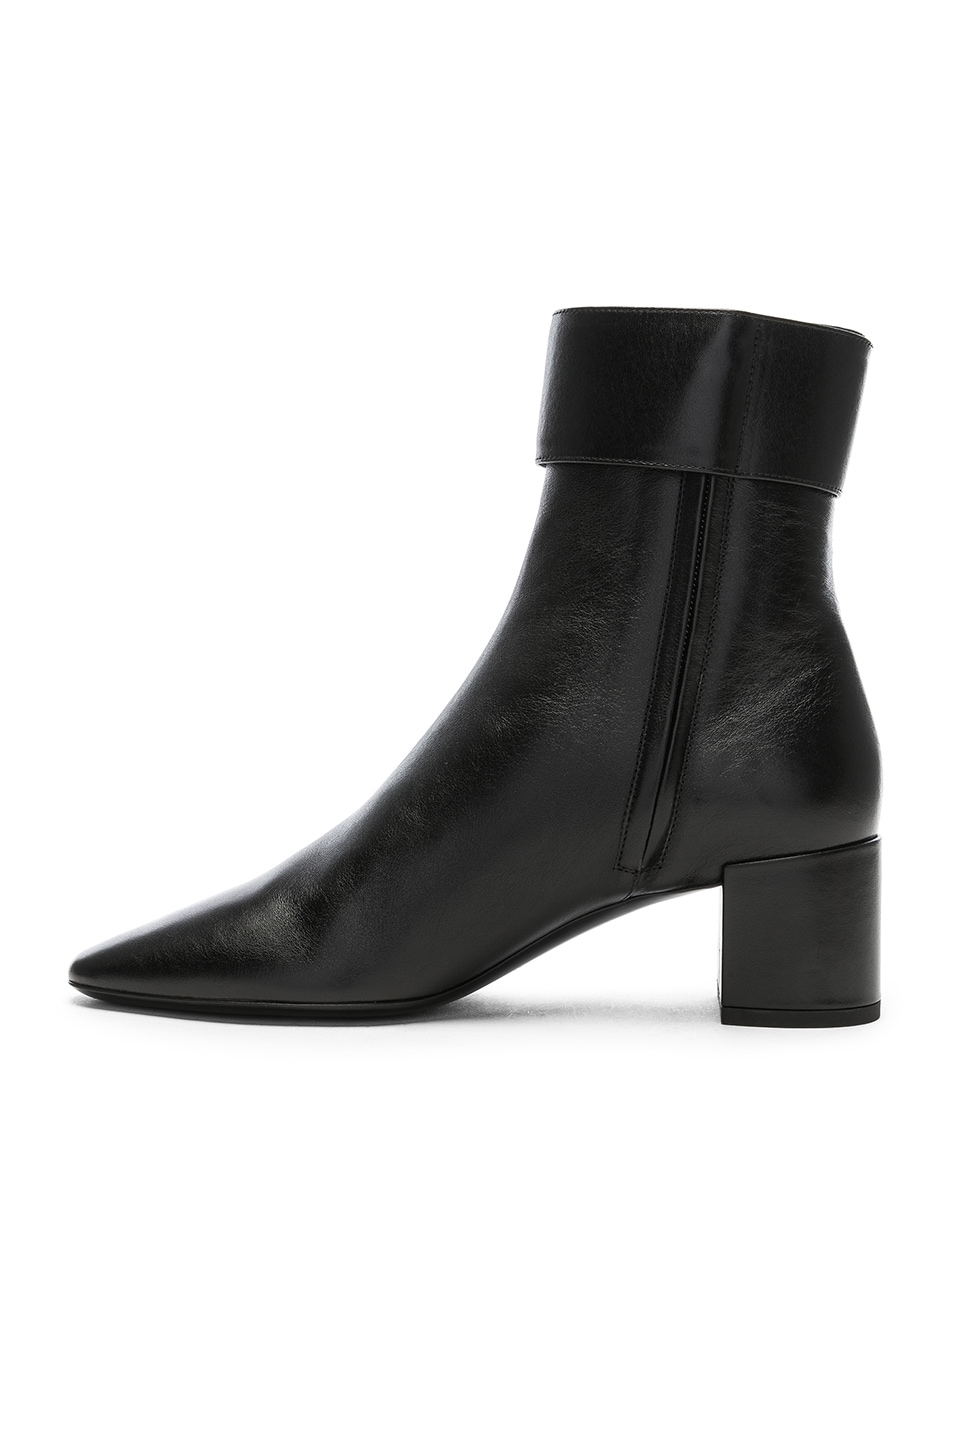 Image 5 of Saint Laurent Leather Joplin Buckle Ankle Boots in Black